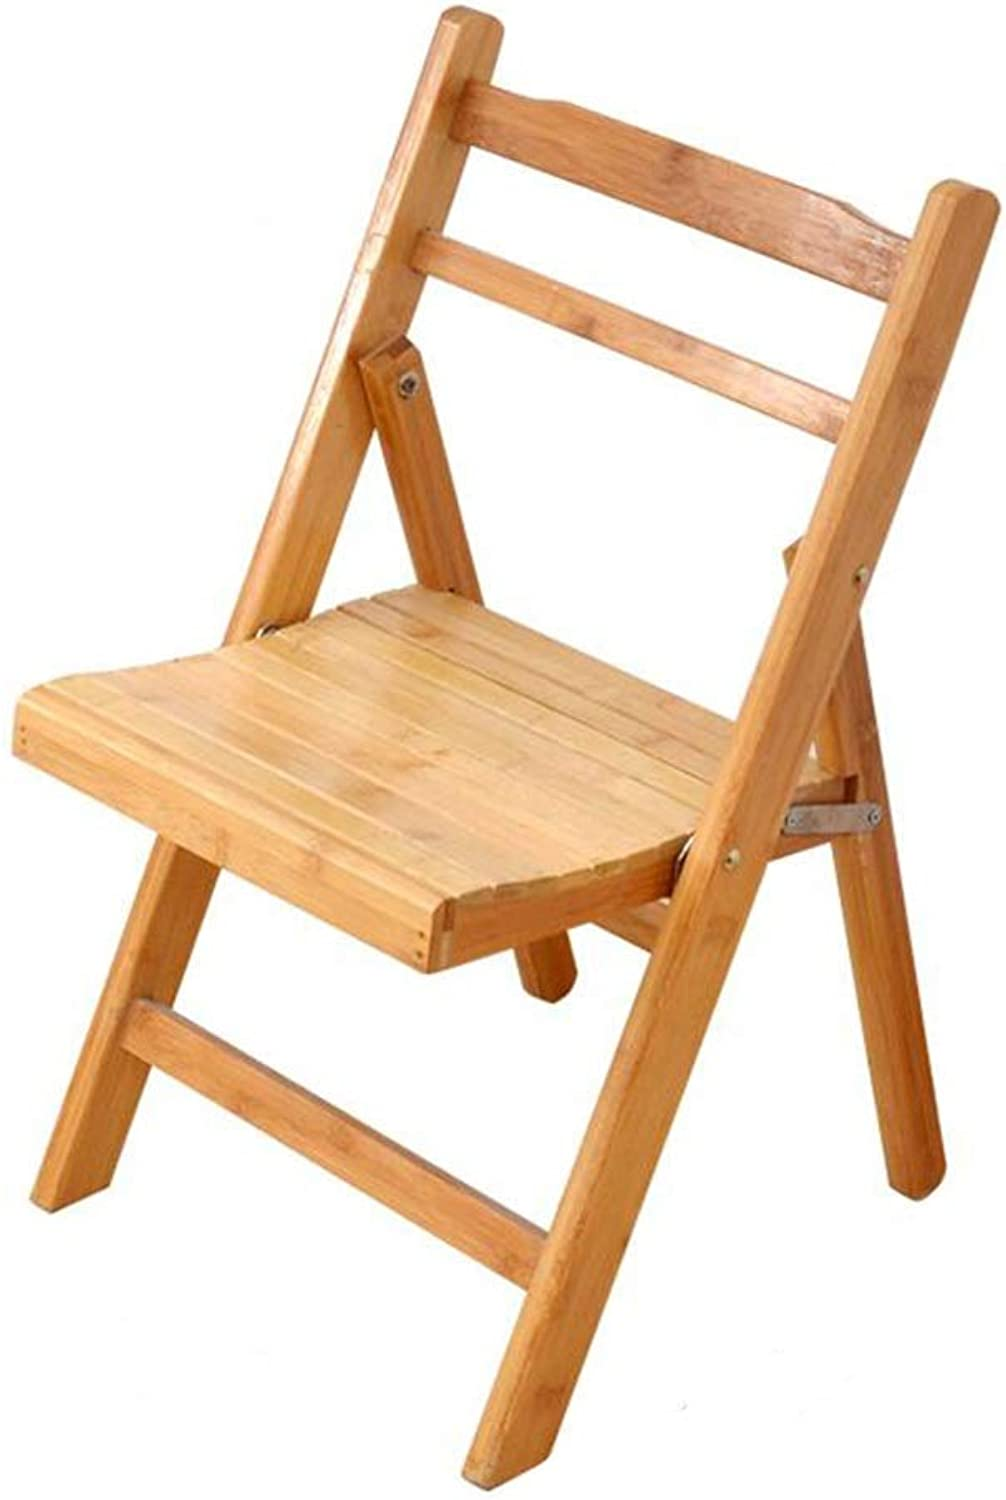 Dall Foldable Backrest Chair Bamboo Dining Chair Simple Portable Leisure Chair Saving Space 2 Sizes (color   56CM)